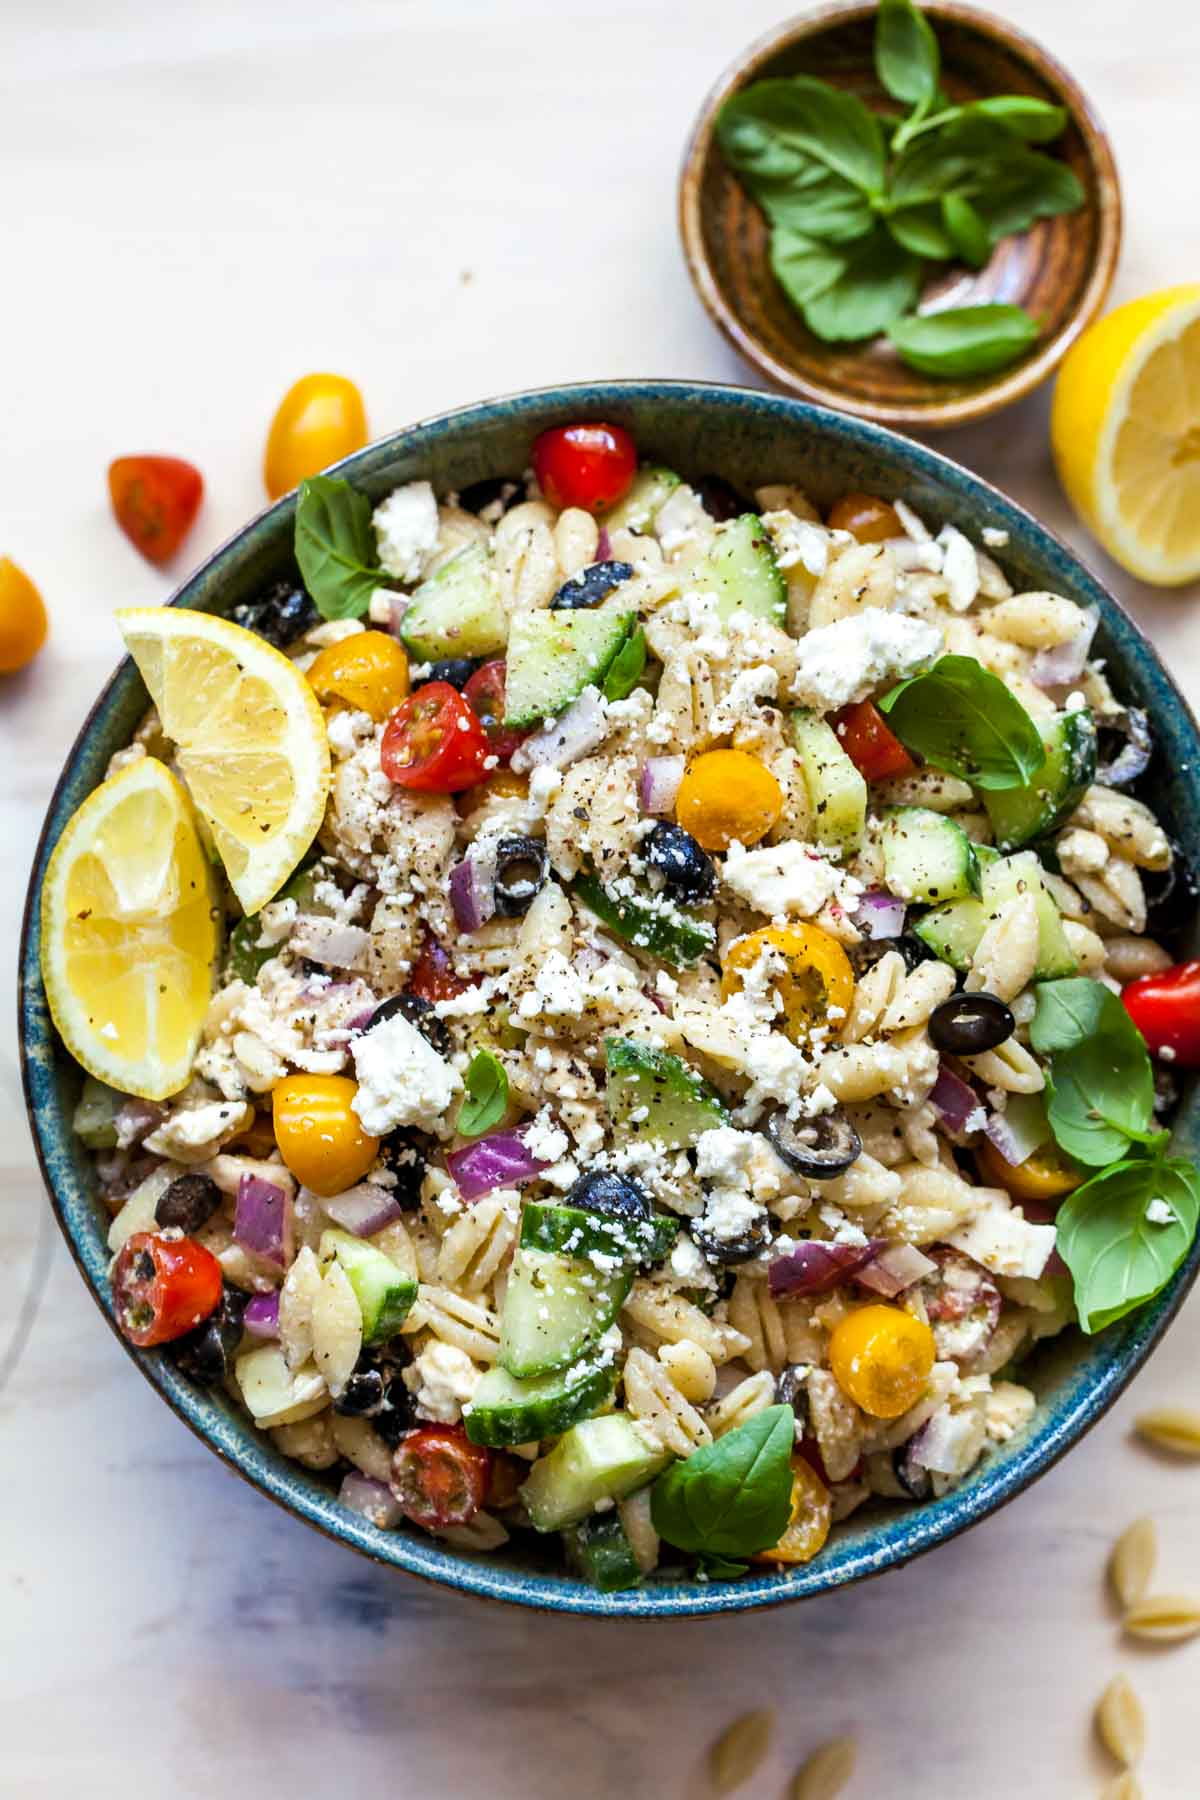 Pasta salad with tomatoes, feta, cucumber and basil garnish in a black bowl